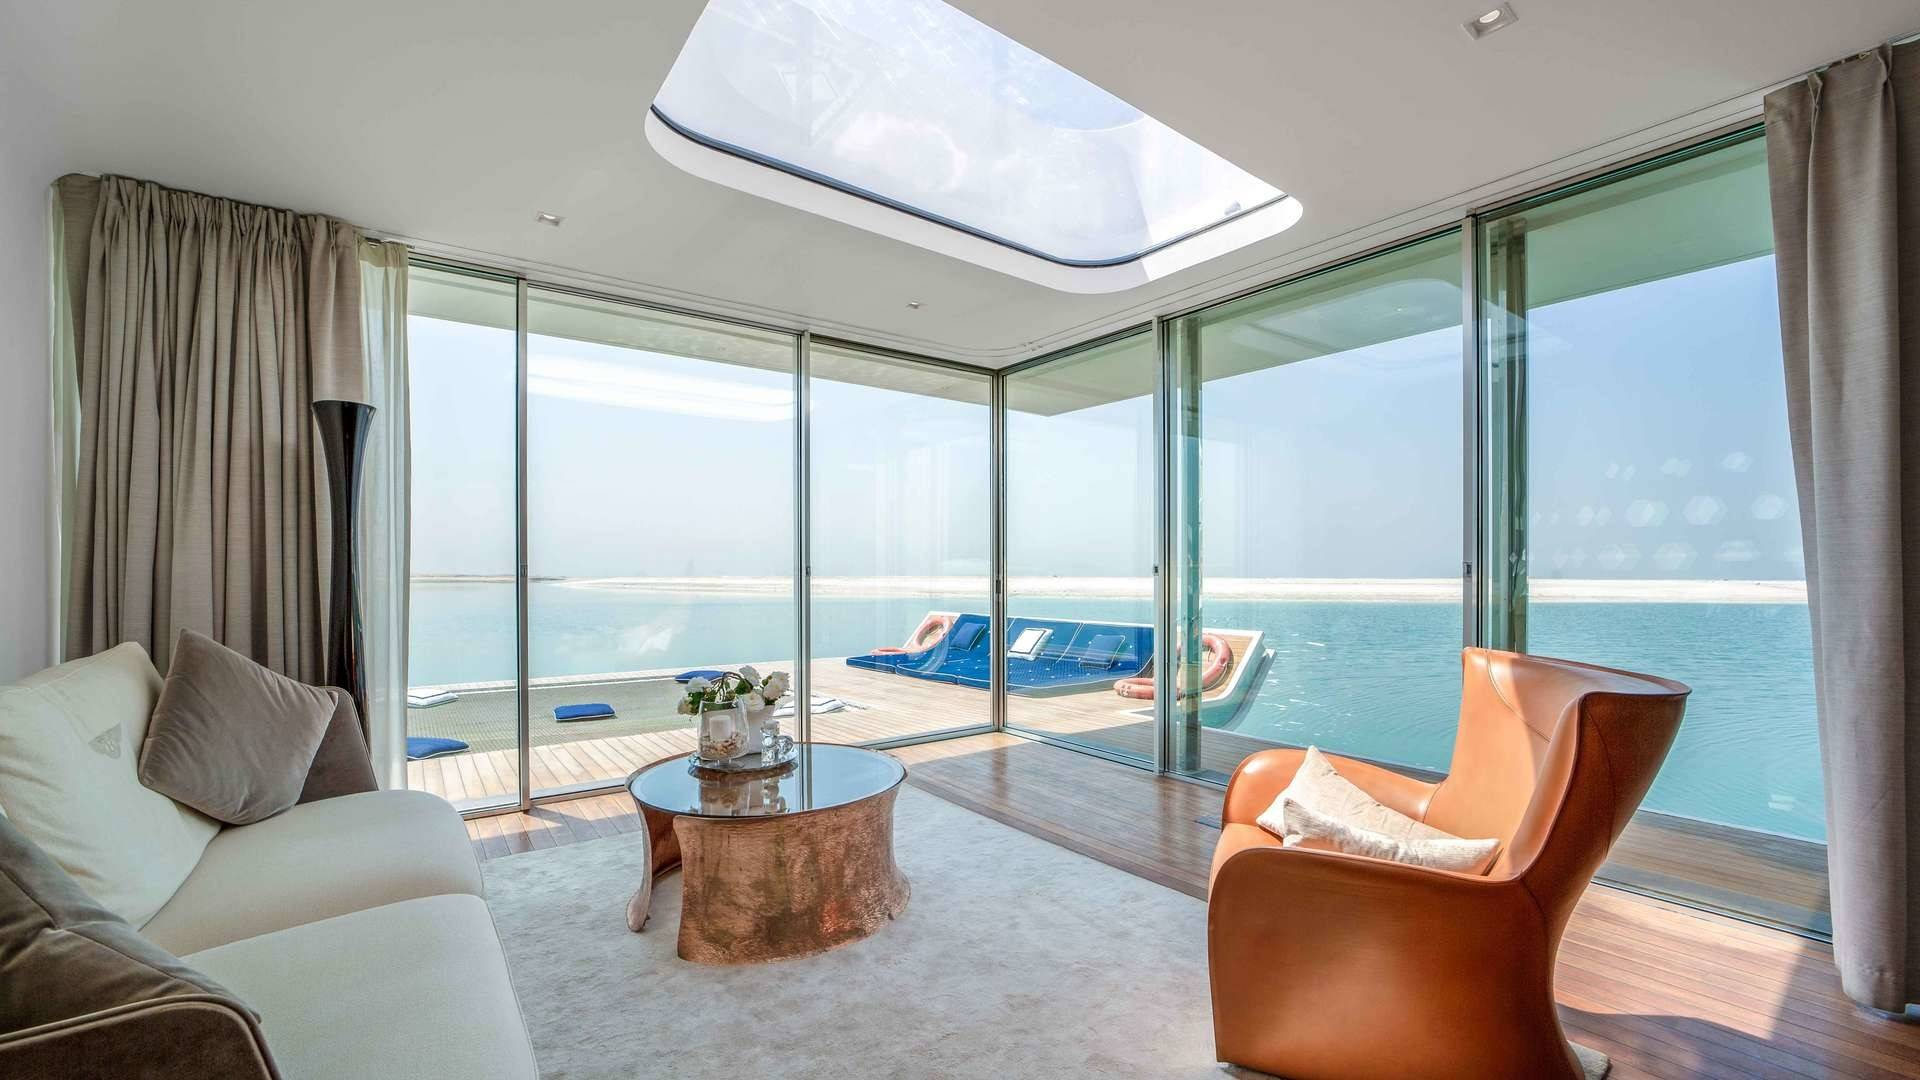 Sea View | Skyline View | Private Jacuzzi